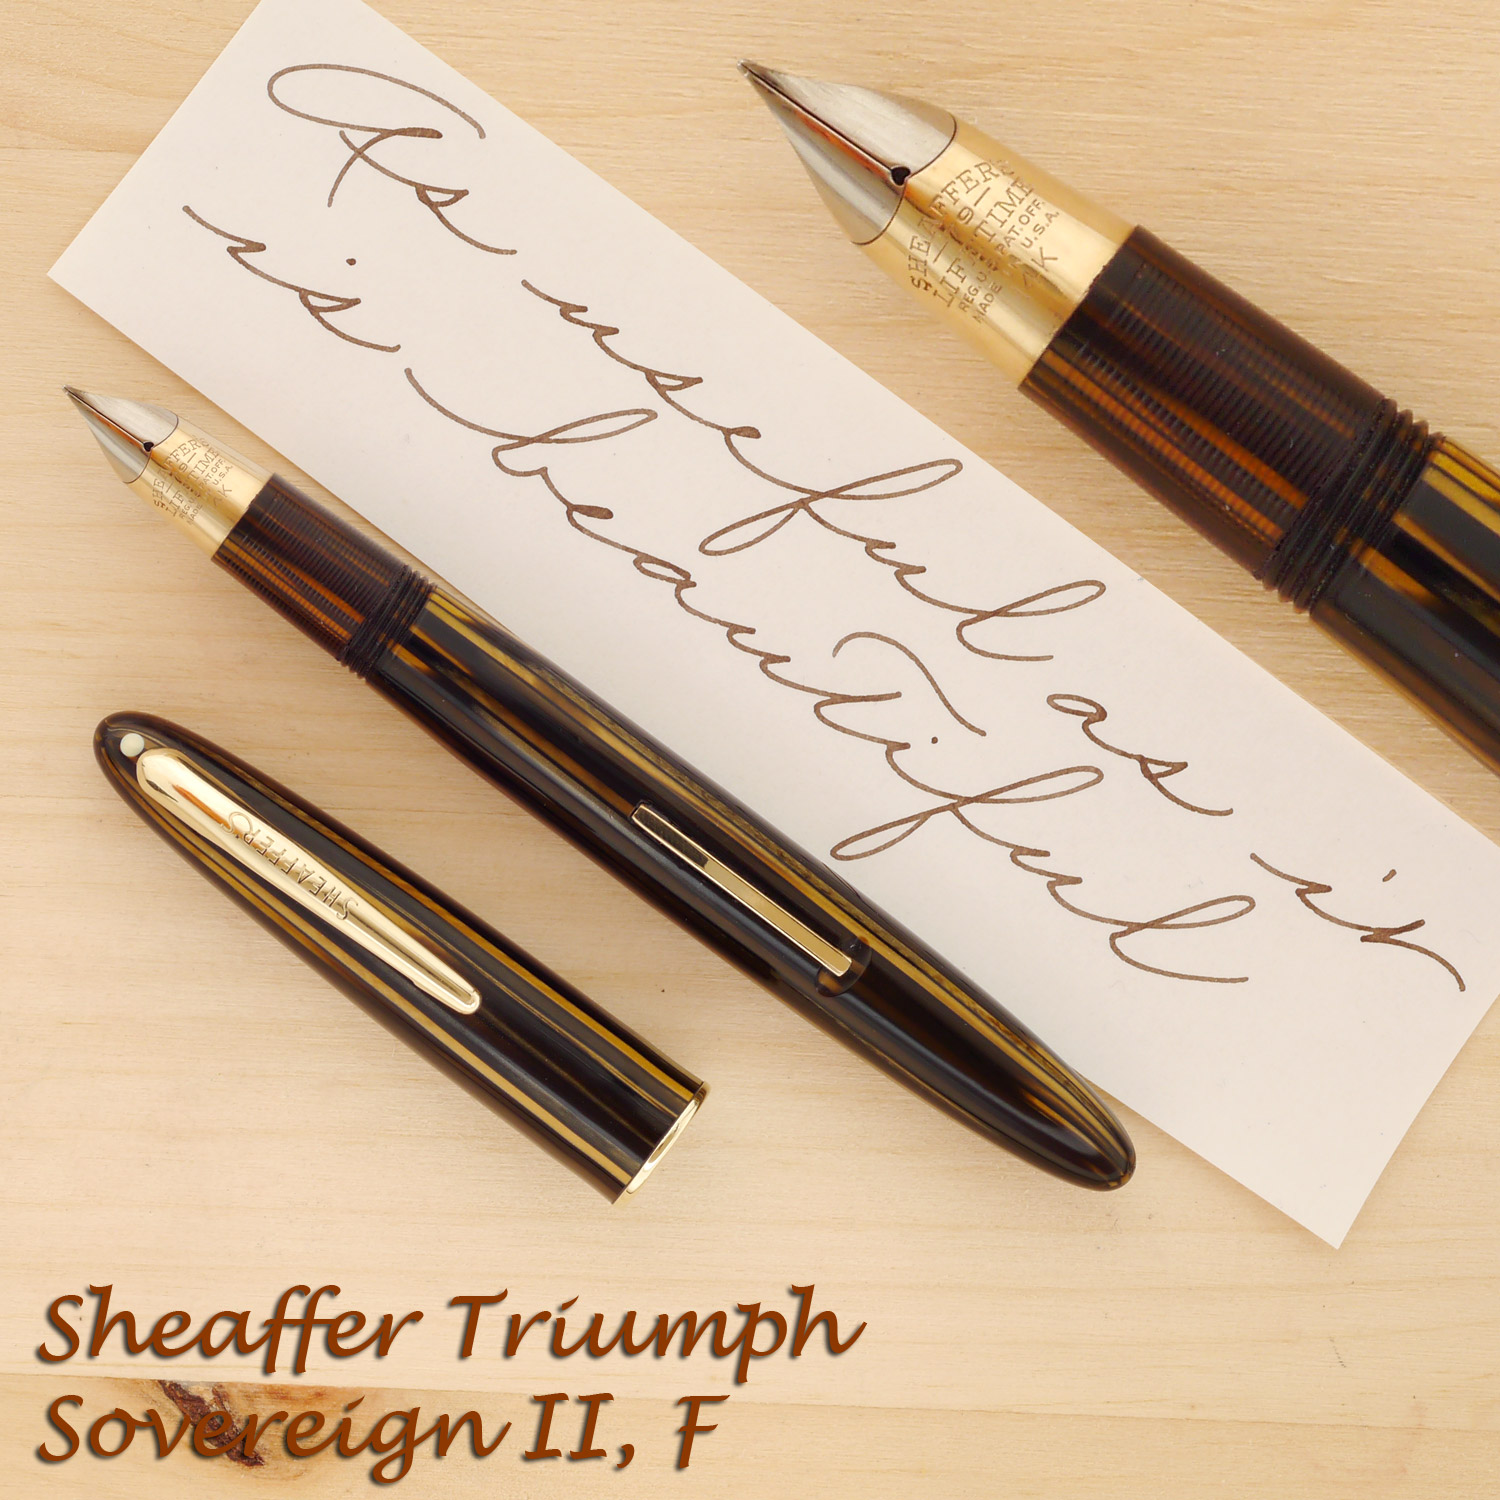 Sheaffer Triumph Sovereign II Golden Brown, F, with the cap off